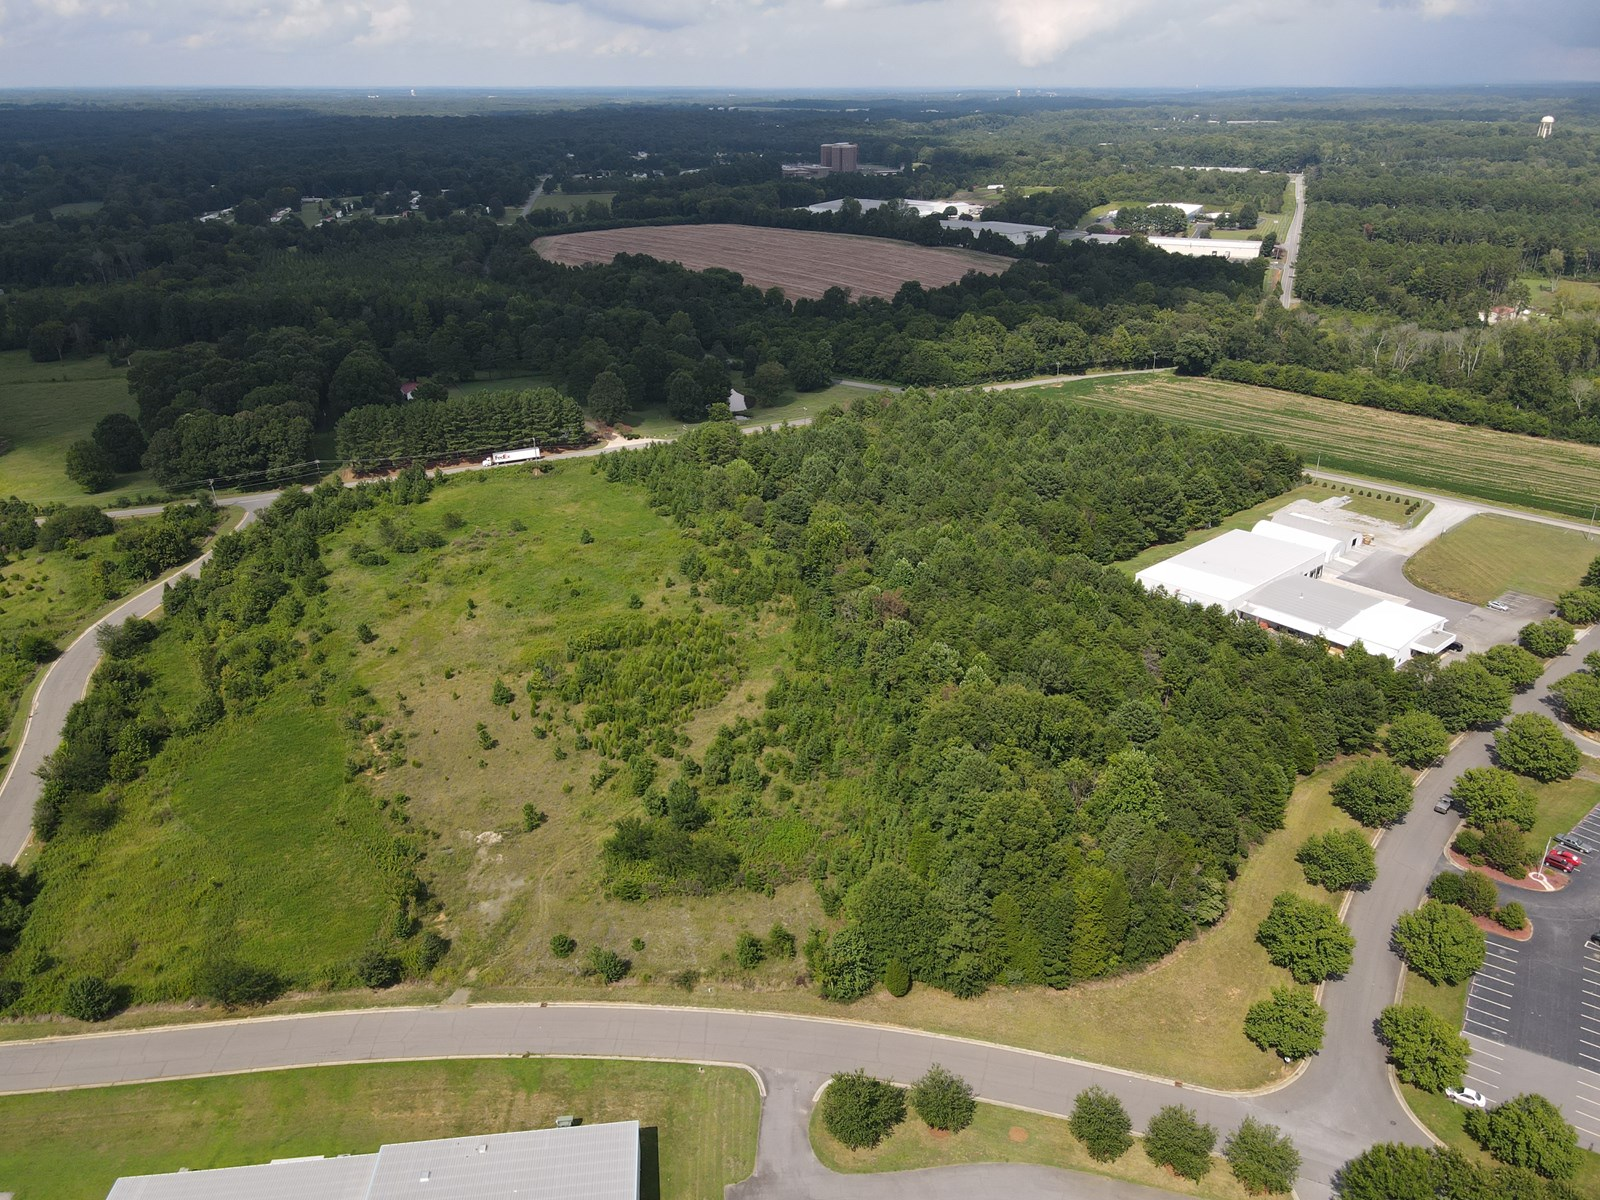 Commercial & Industrial Lots For Sale in Salisbury NC